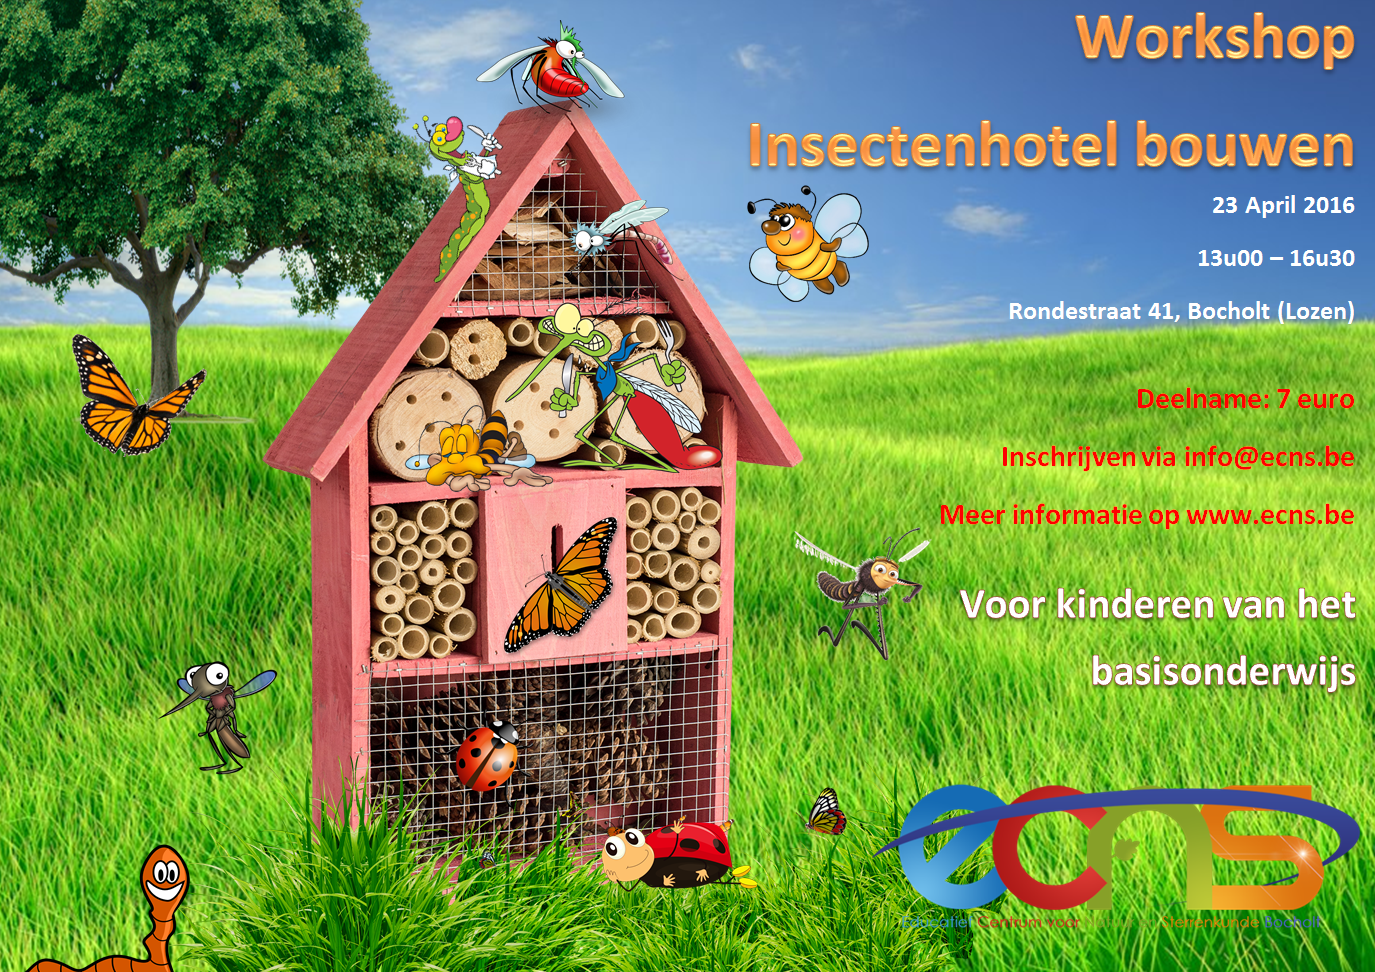 Workshop Insectenhotel